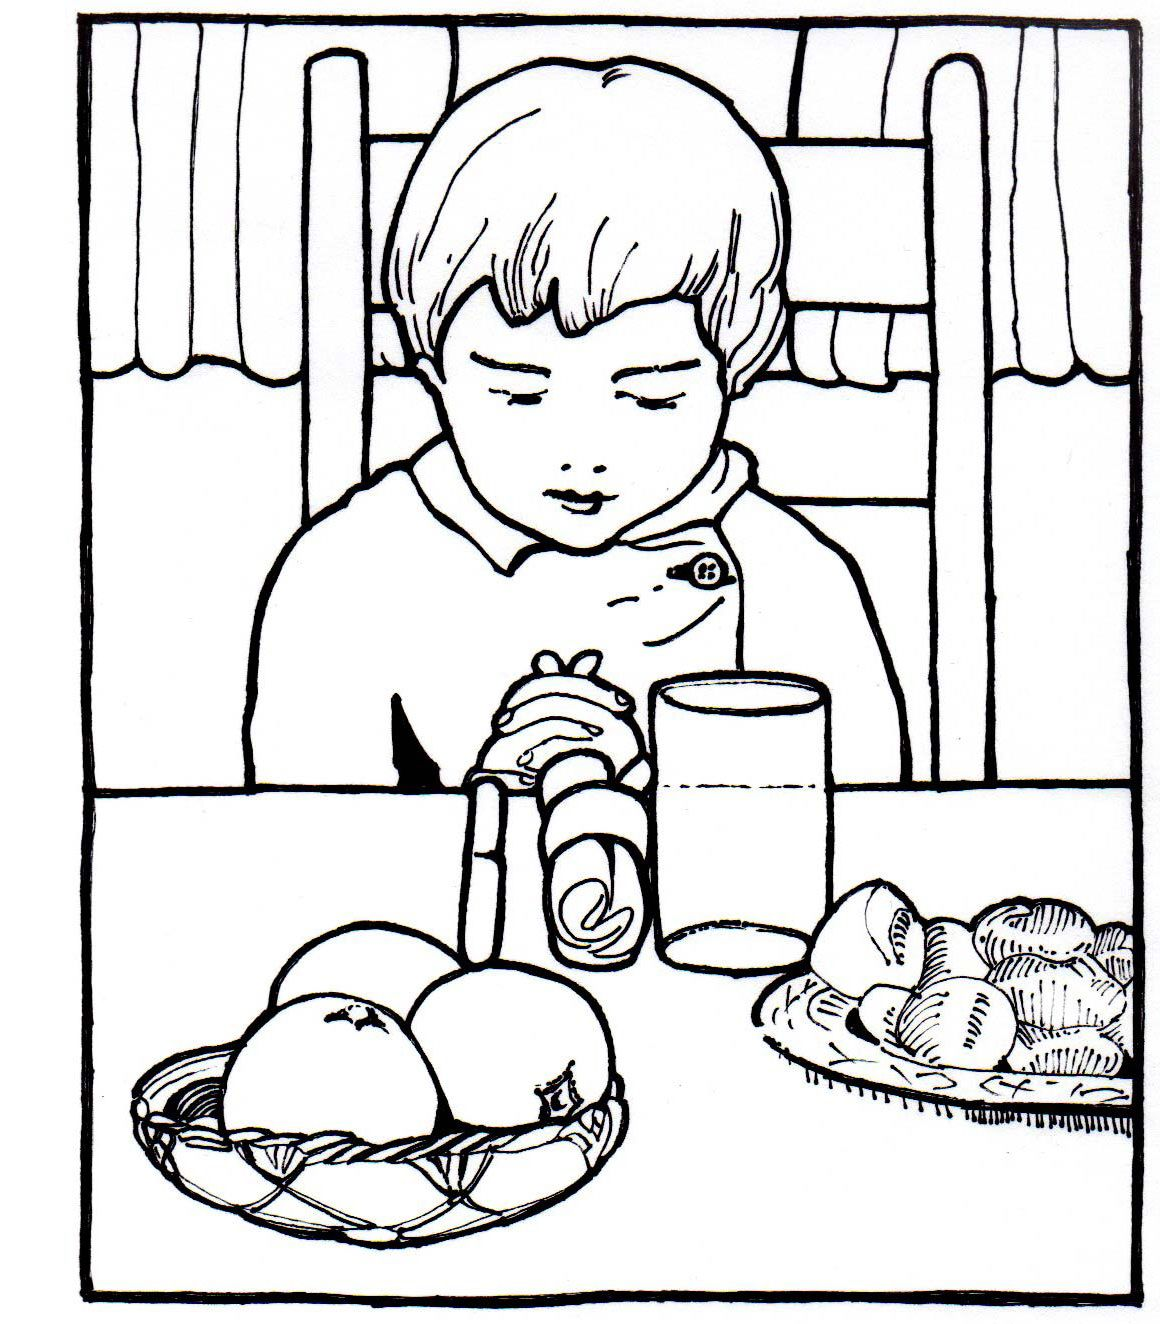 Christian Coloring Pages for Kids, Compliments of Warren